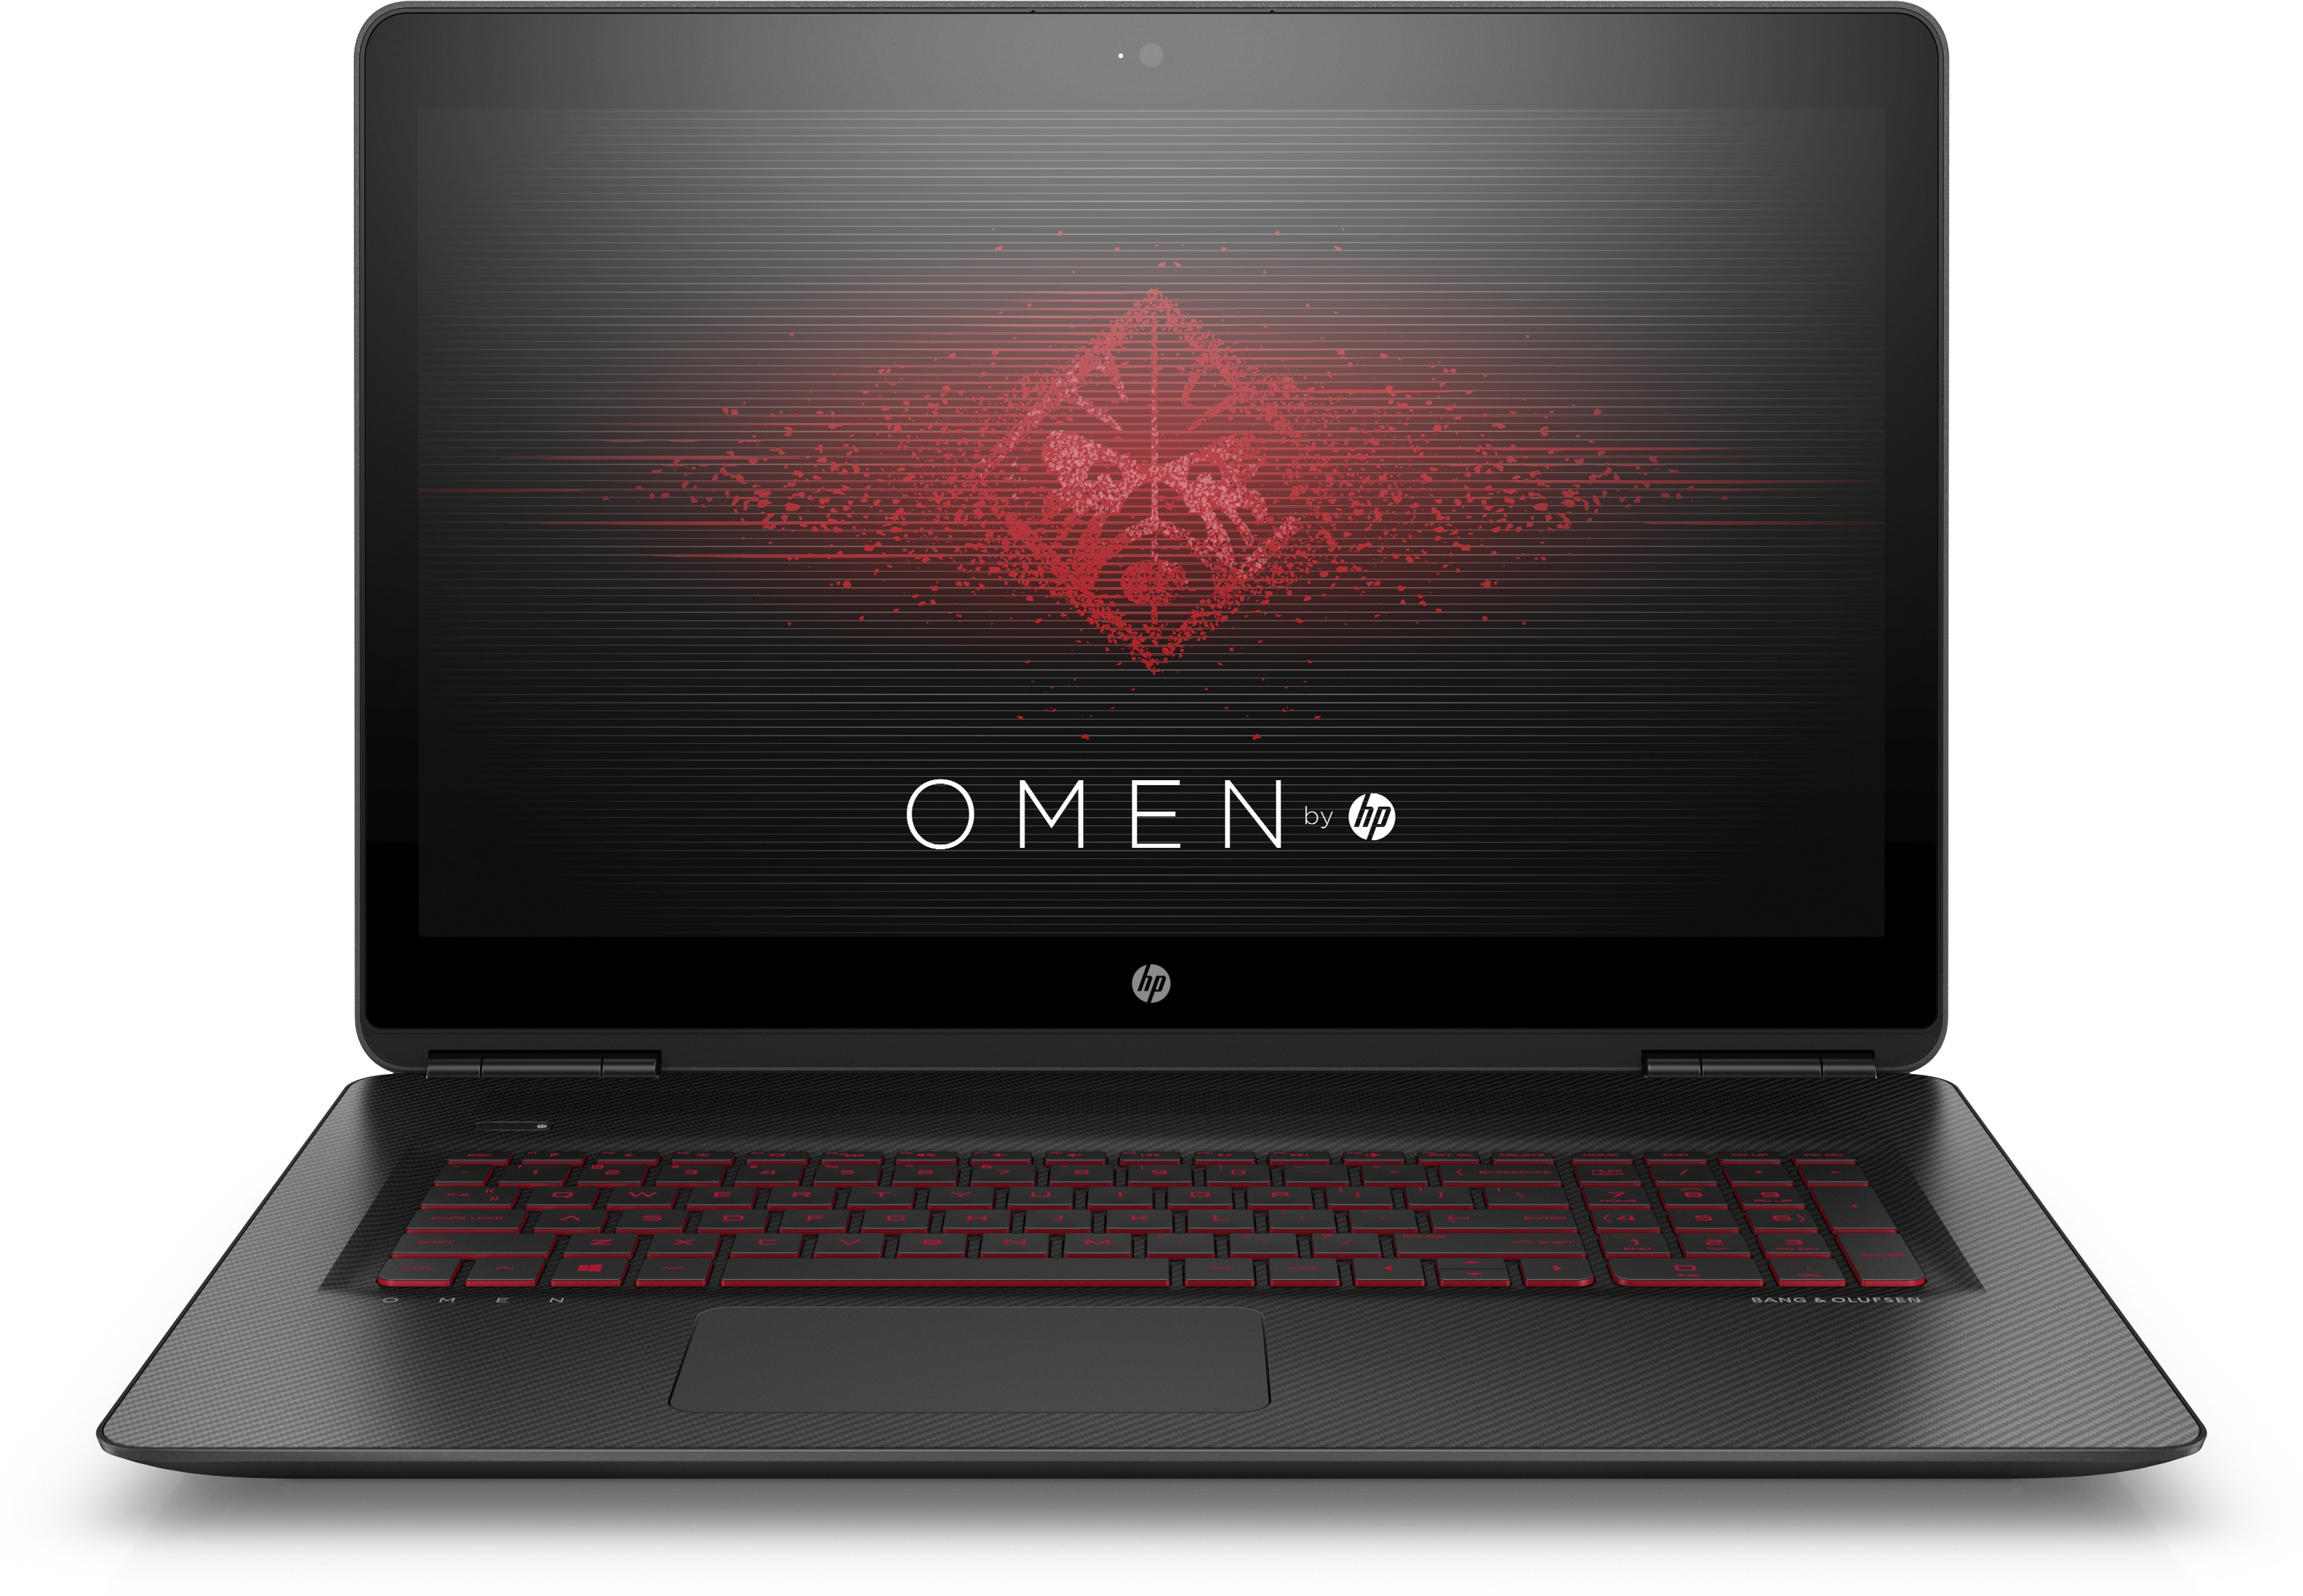 Deals - Jodhpur - Flat ₹15000 off <br> HP Omen Laptops<br> Category - computers<br> Business - Flipkart.com